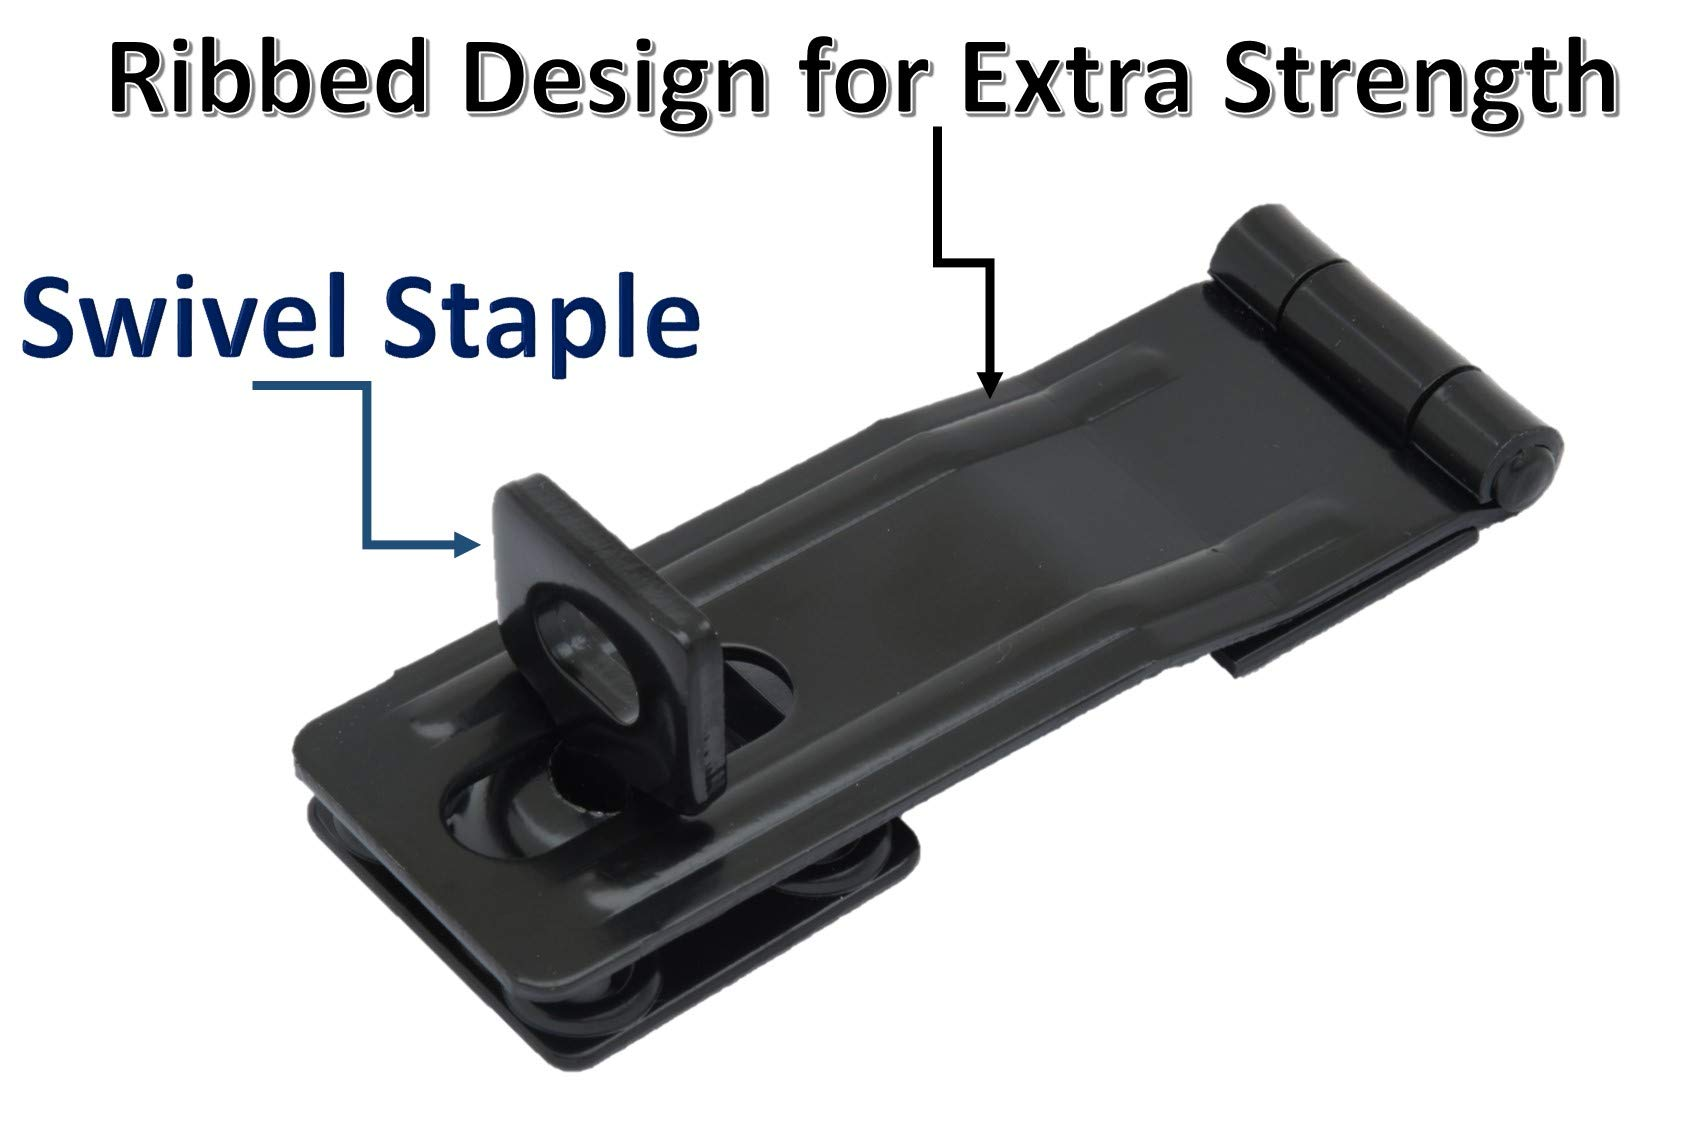 QCAA HASP and Swivel Staple, 4-1/2'', Steel, Black, 2 Pack, Made in Taiwan by QCAA